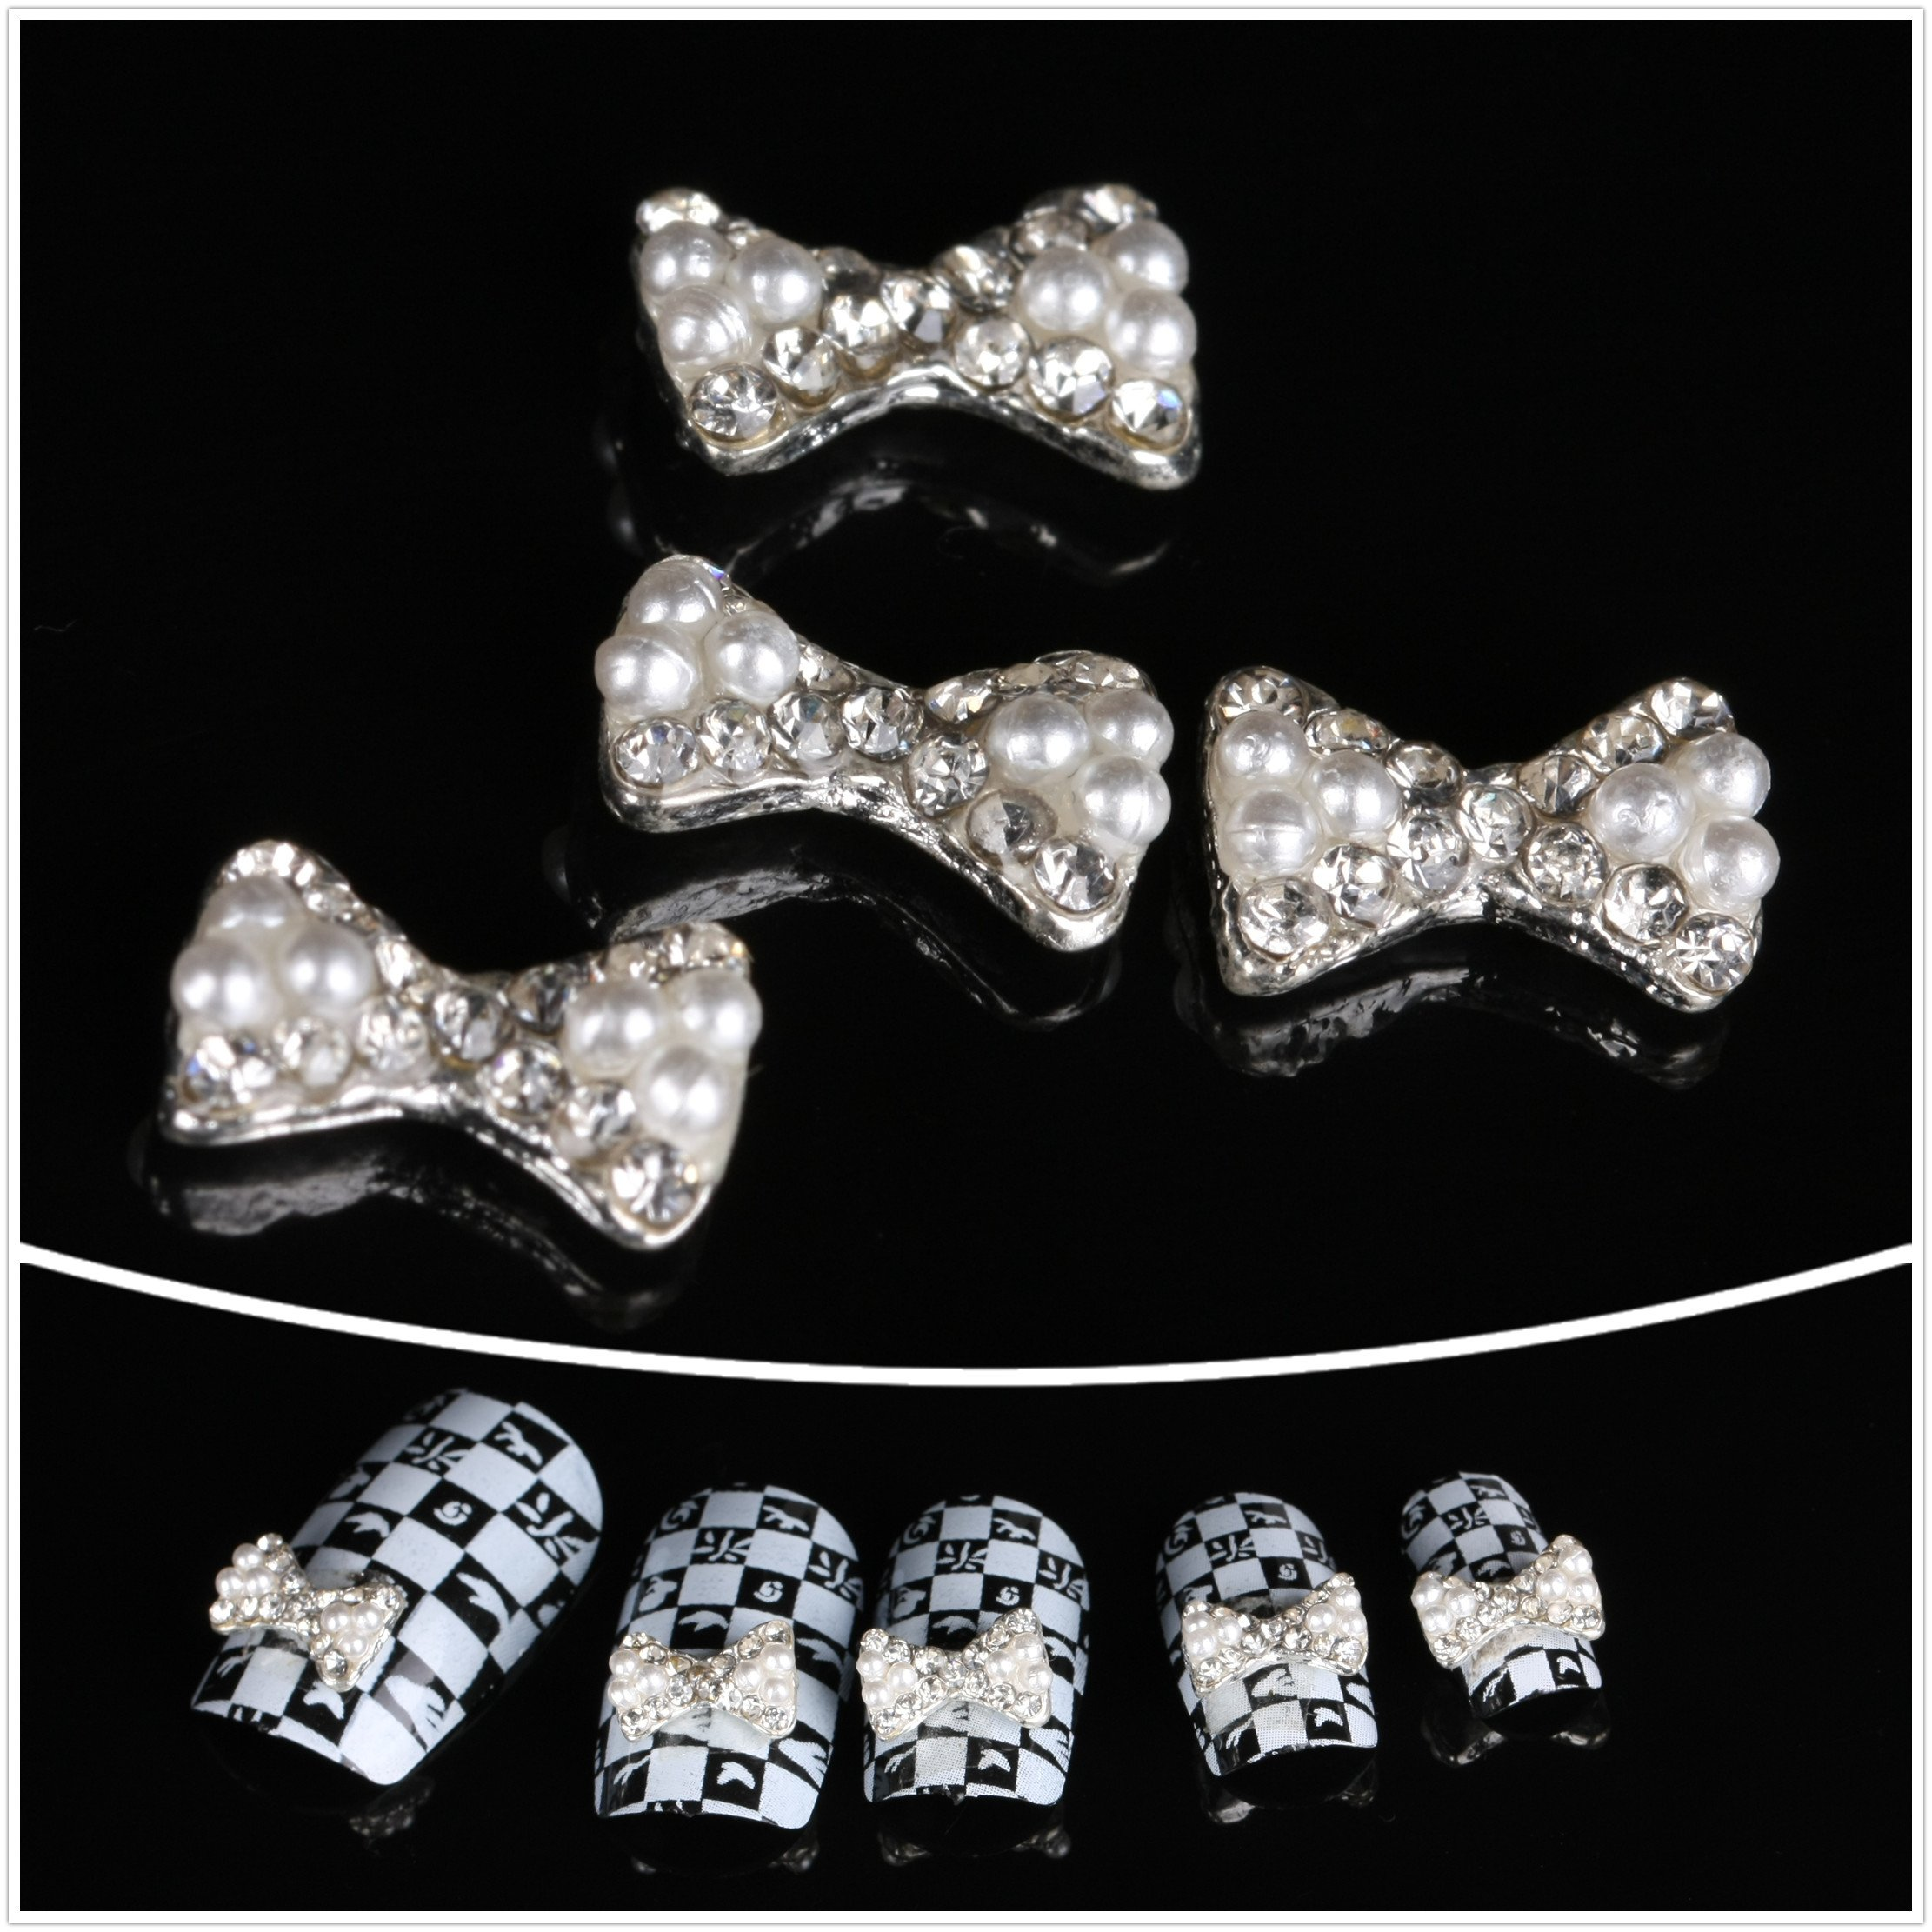 BTArtbox 10x3D White Pearls Nail Art Decorations Clear Crystal Bow Tie Reusable DIY Decorations by BTArt-Decals